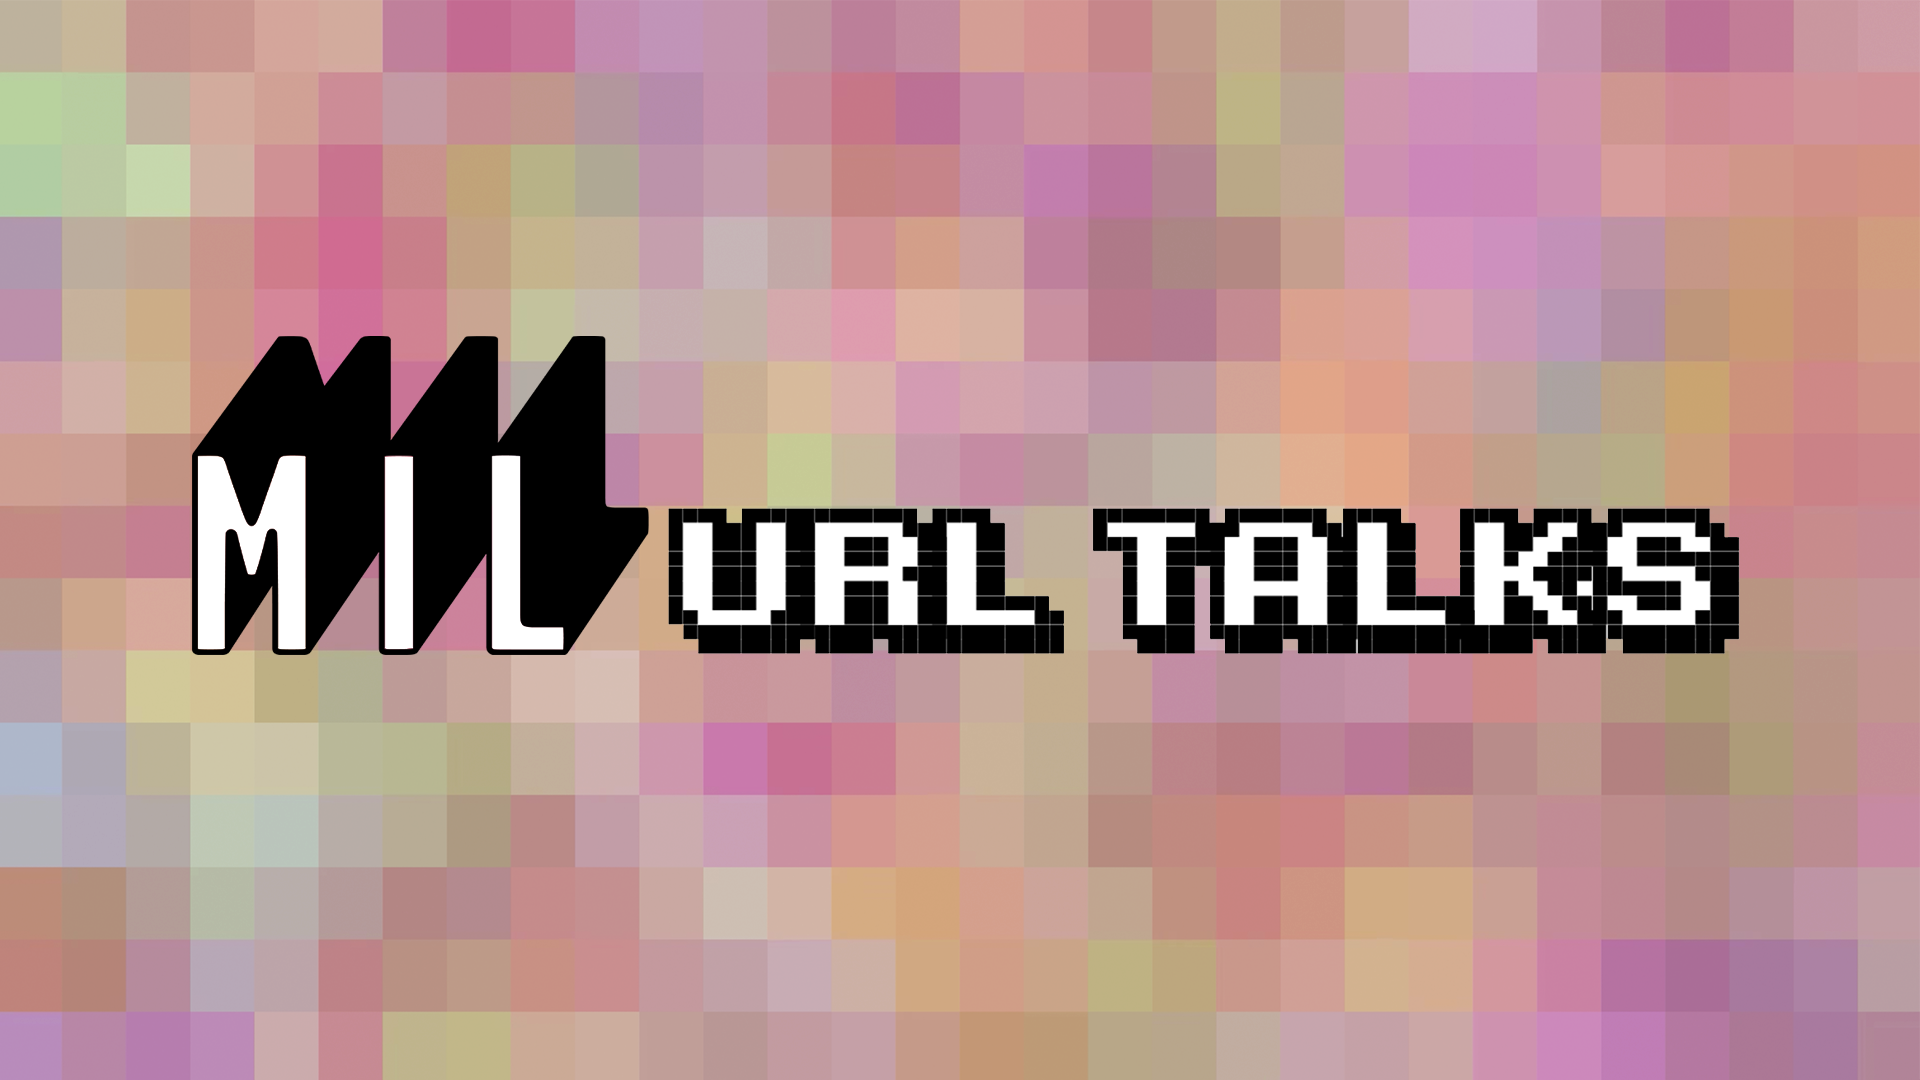 MIL URL talks: Sector da música ao vivo em desconfinamento